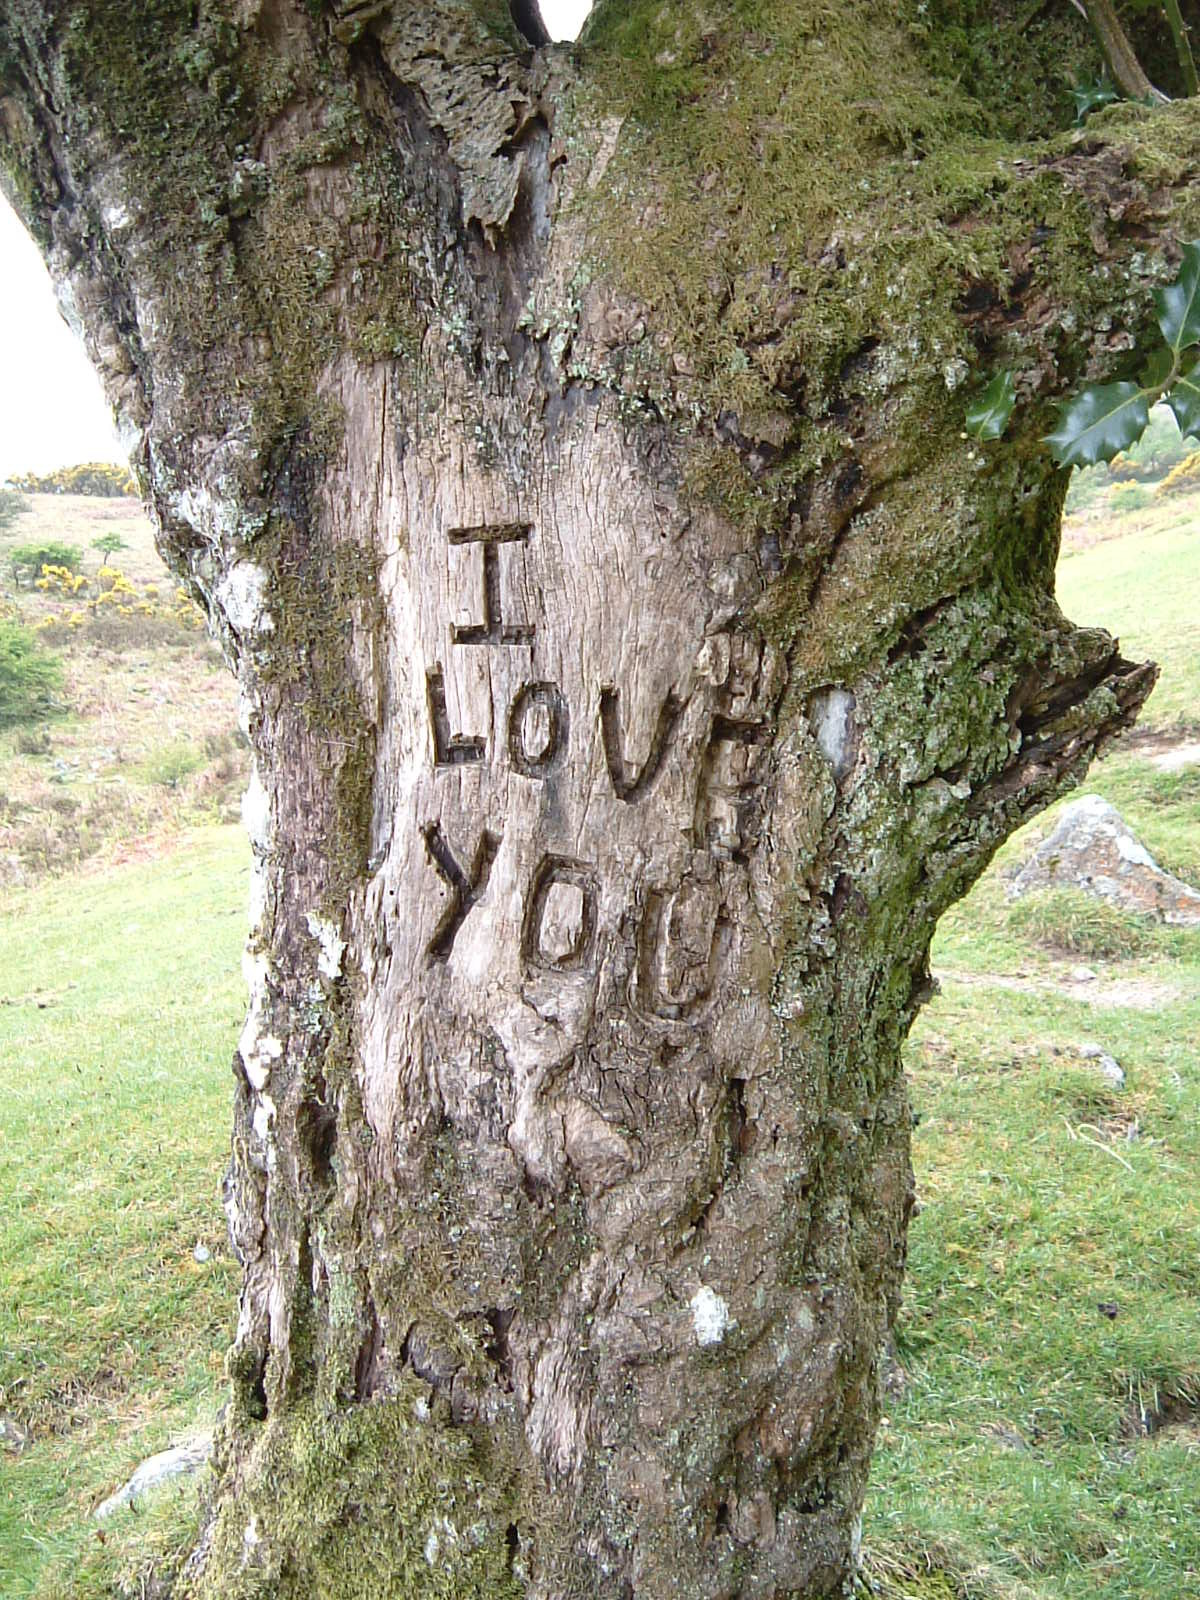 A tree carving saying 'I love you'